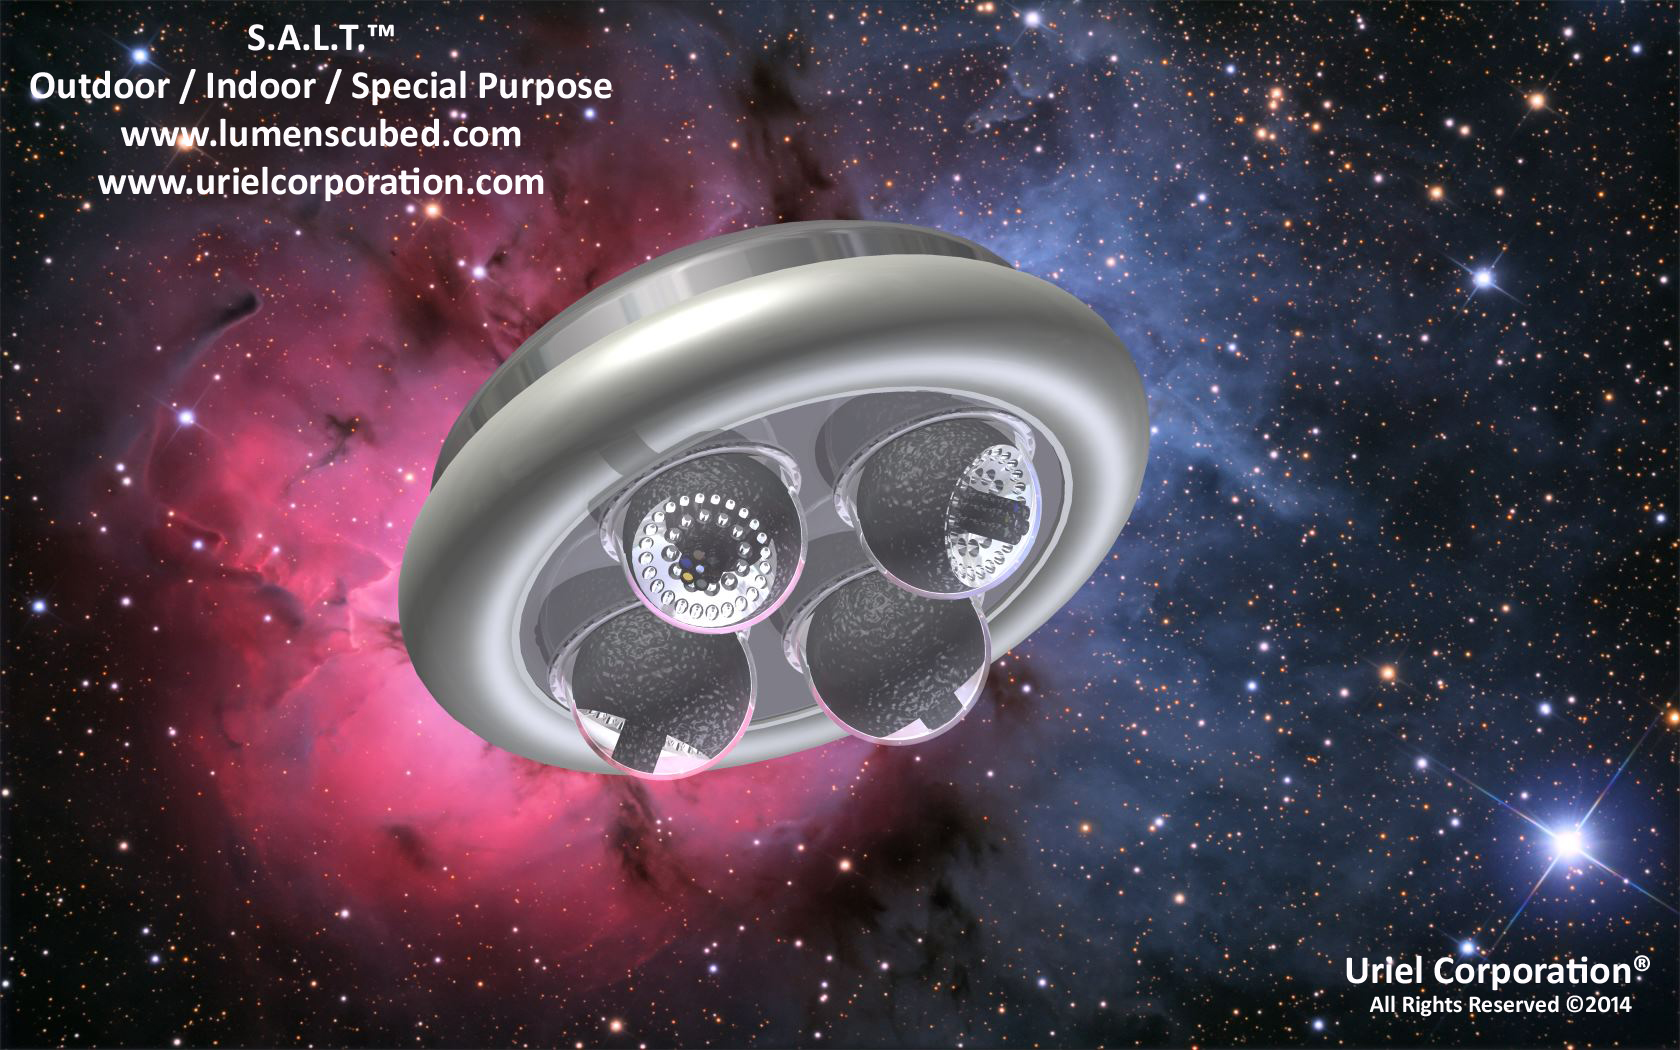 SERVO / STEPPER ASSISTED LIGHTING TECHNOLOGY (S.A.L.T.)™ OUTDOOR-INDOOR-SPECIAL PURPOSE ROUND LED LIGHTING